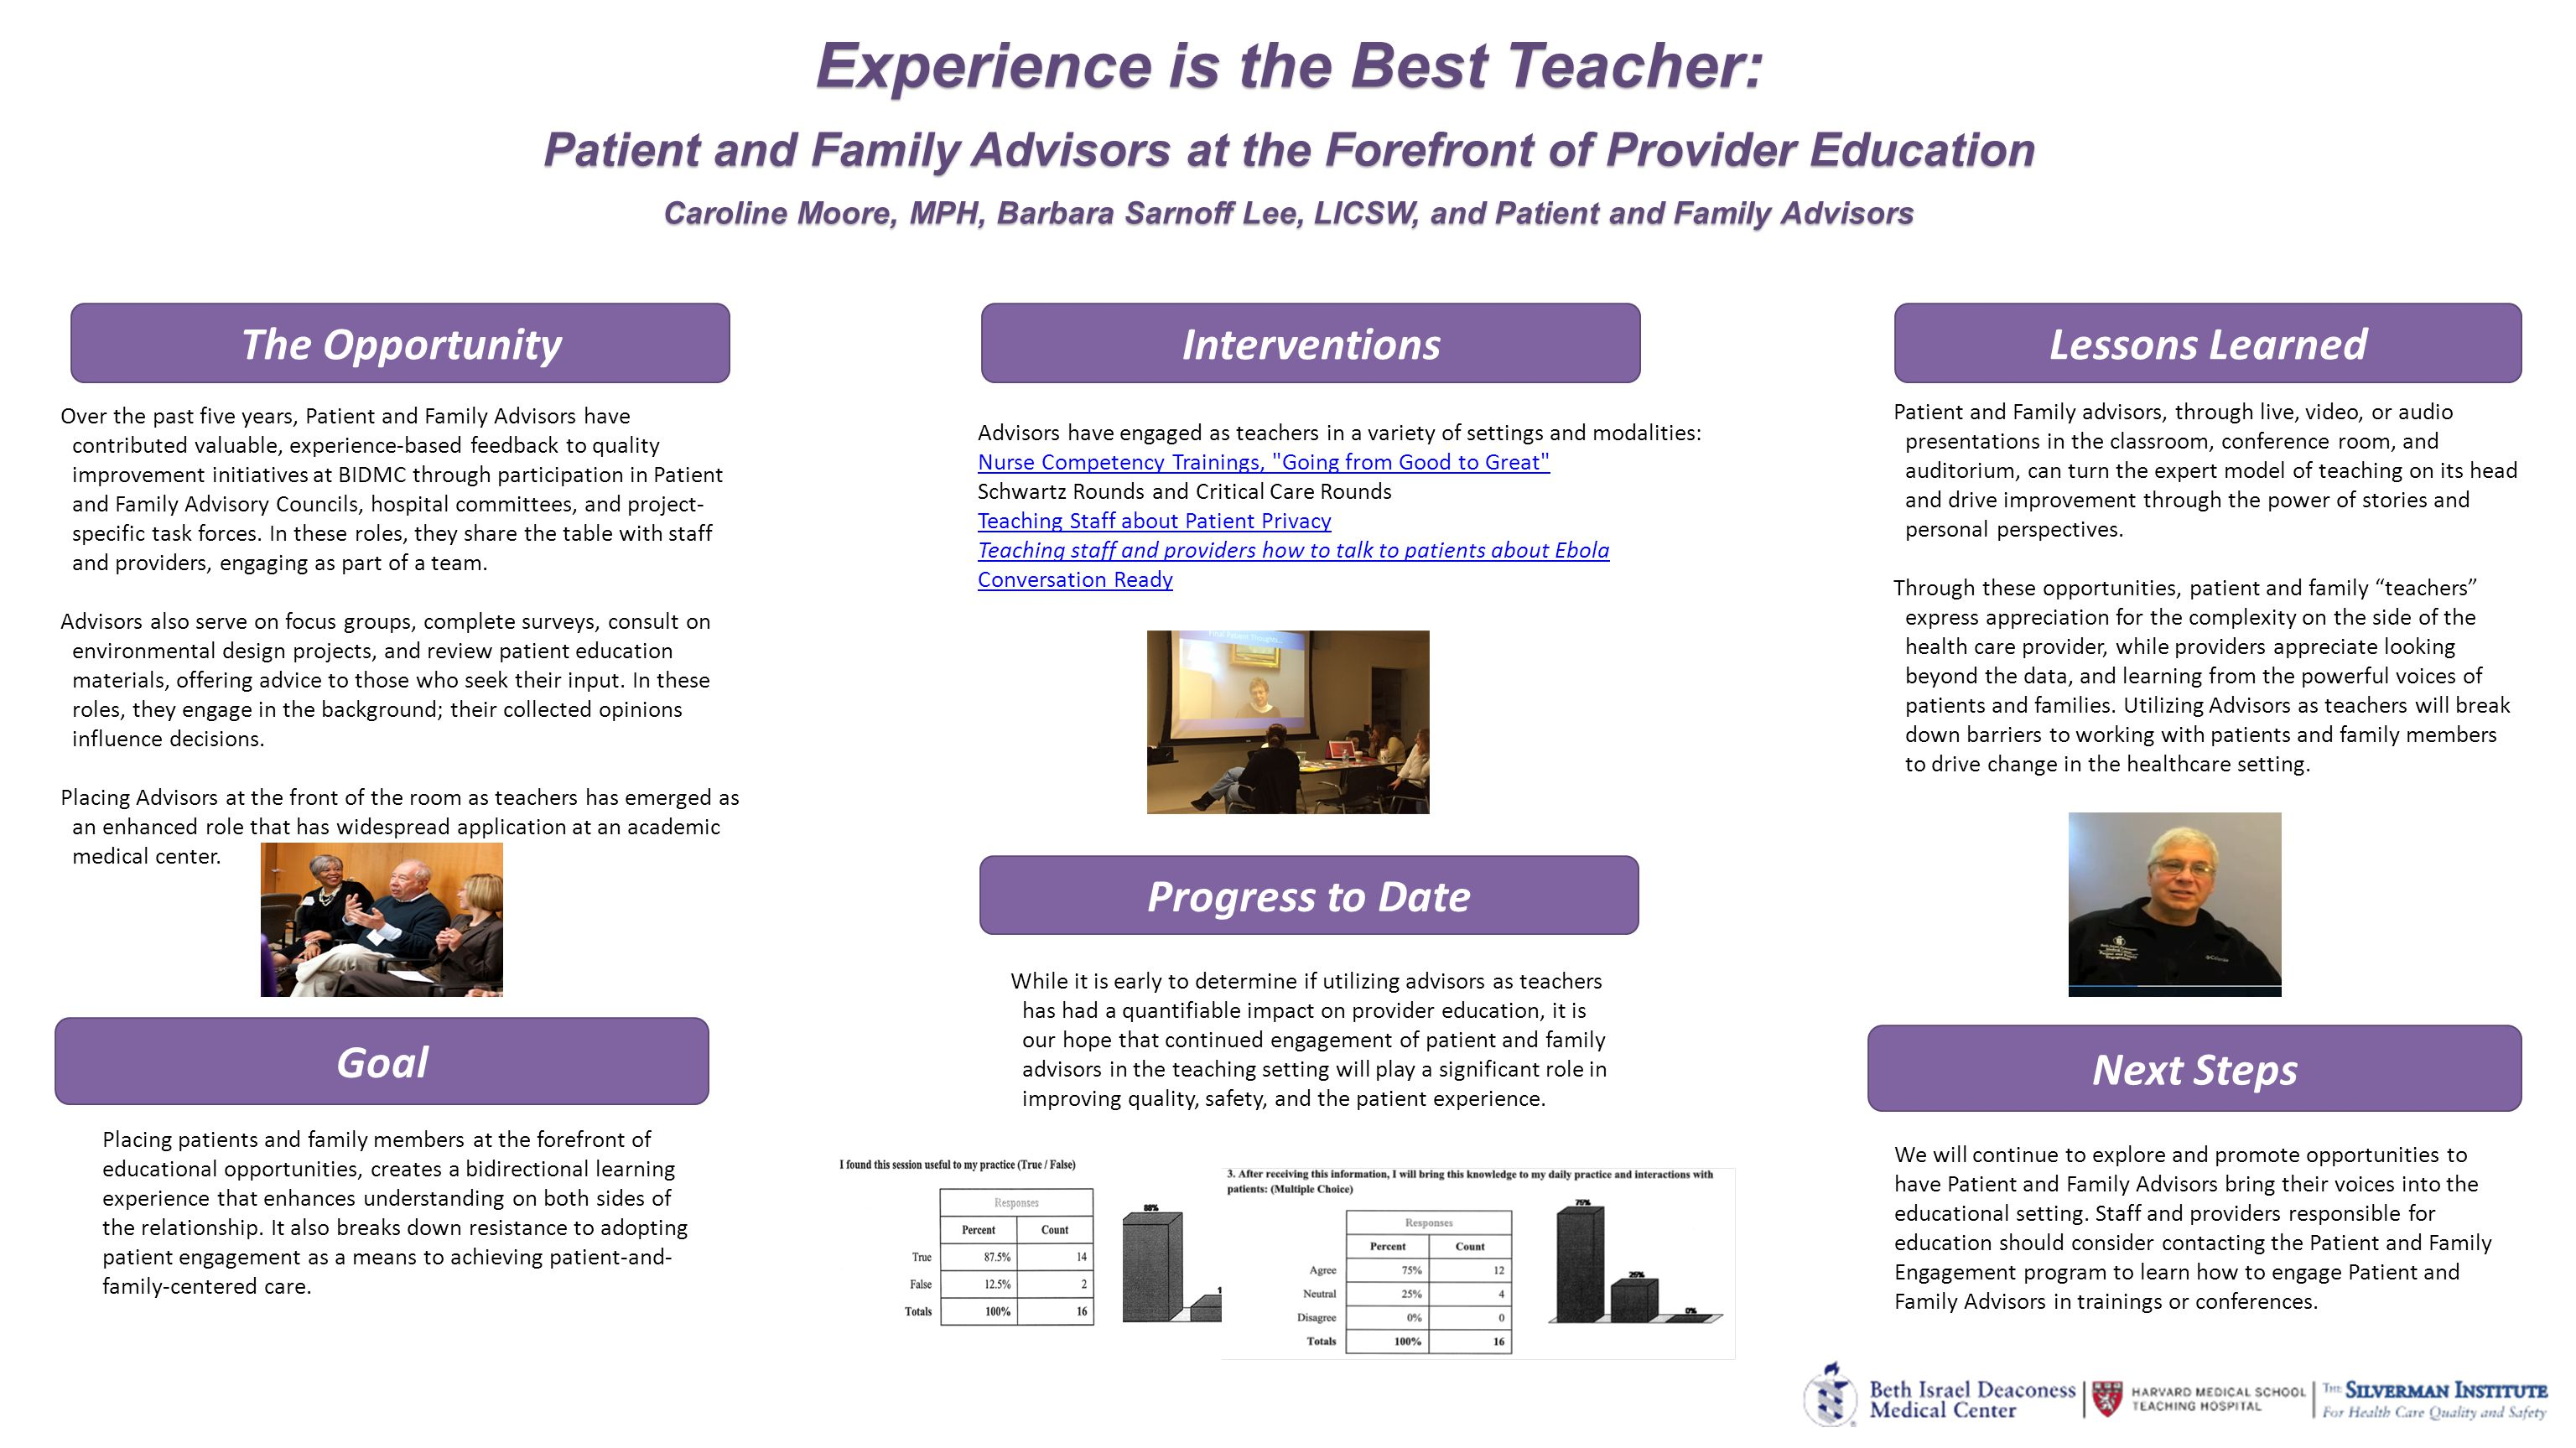 Experience is the Best Teacher: Patient and Family Advisors at the Forefront of Provider Education Caroline Moore, MPH, Barbara Sarnoff Lee, LICSW, and Patient and Family Advisors Experience is the Best Teacher: Patient and Family Advisors at the Forefront of Provider Education Caroline Moore, MPH, Barbara Sarnoff Lee, LICSW, and Patient and Family Advisors Goal Lessons Learned Over the past five years, Patient and Family Advisors have contributed valuable, experience-based feedback to quality improvement initiatives at BIDMC through participation in Patient and Family Advisory Councils, hospital committees, and project- specific task forces.